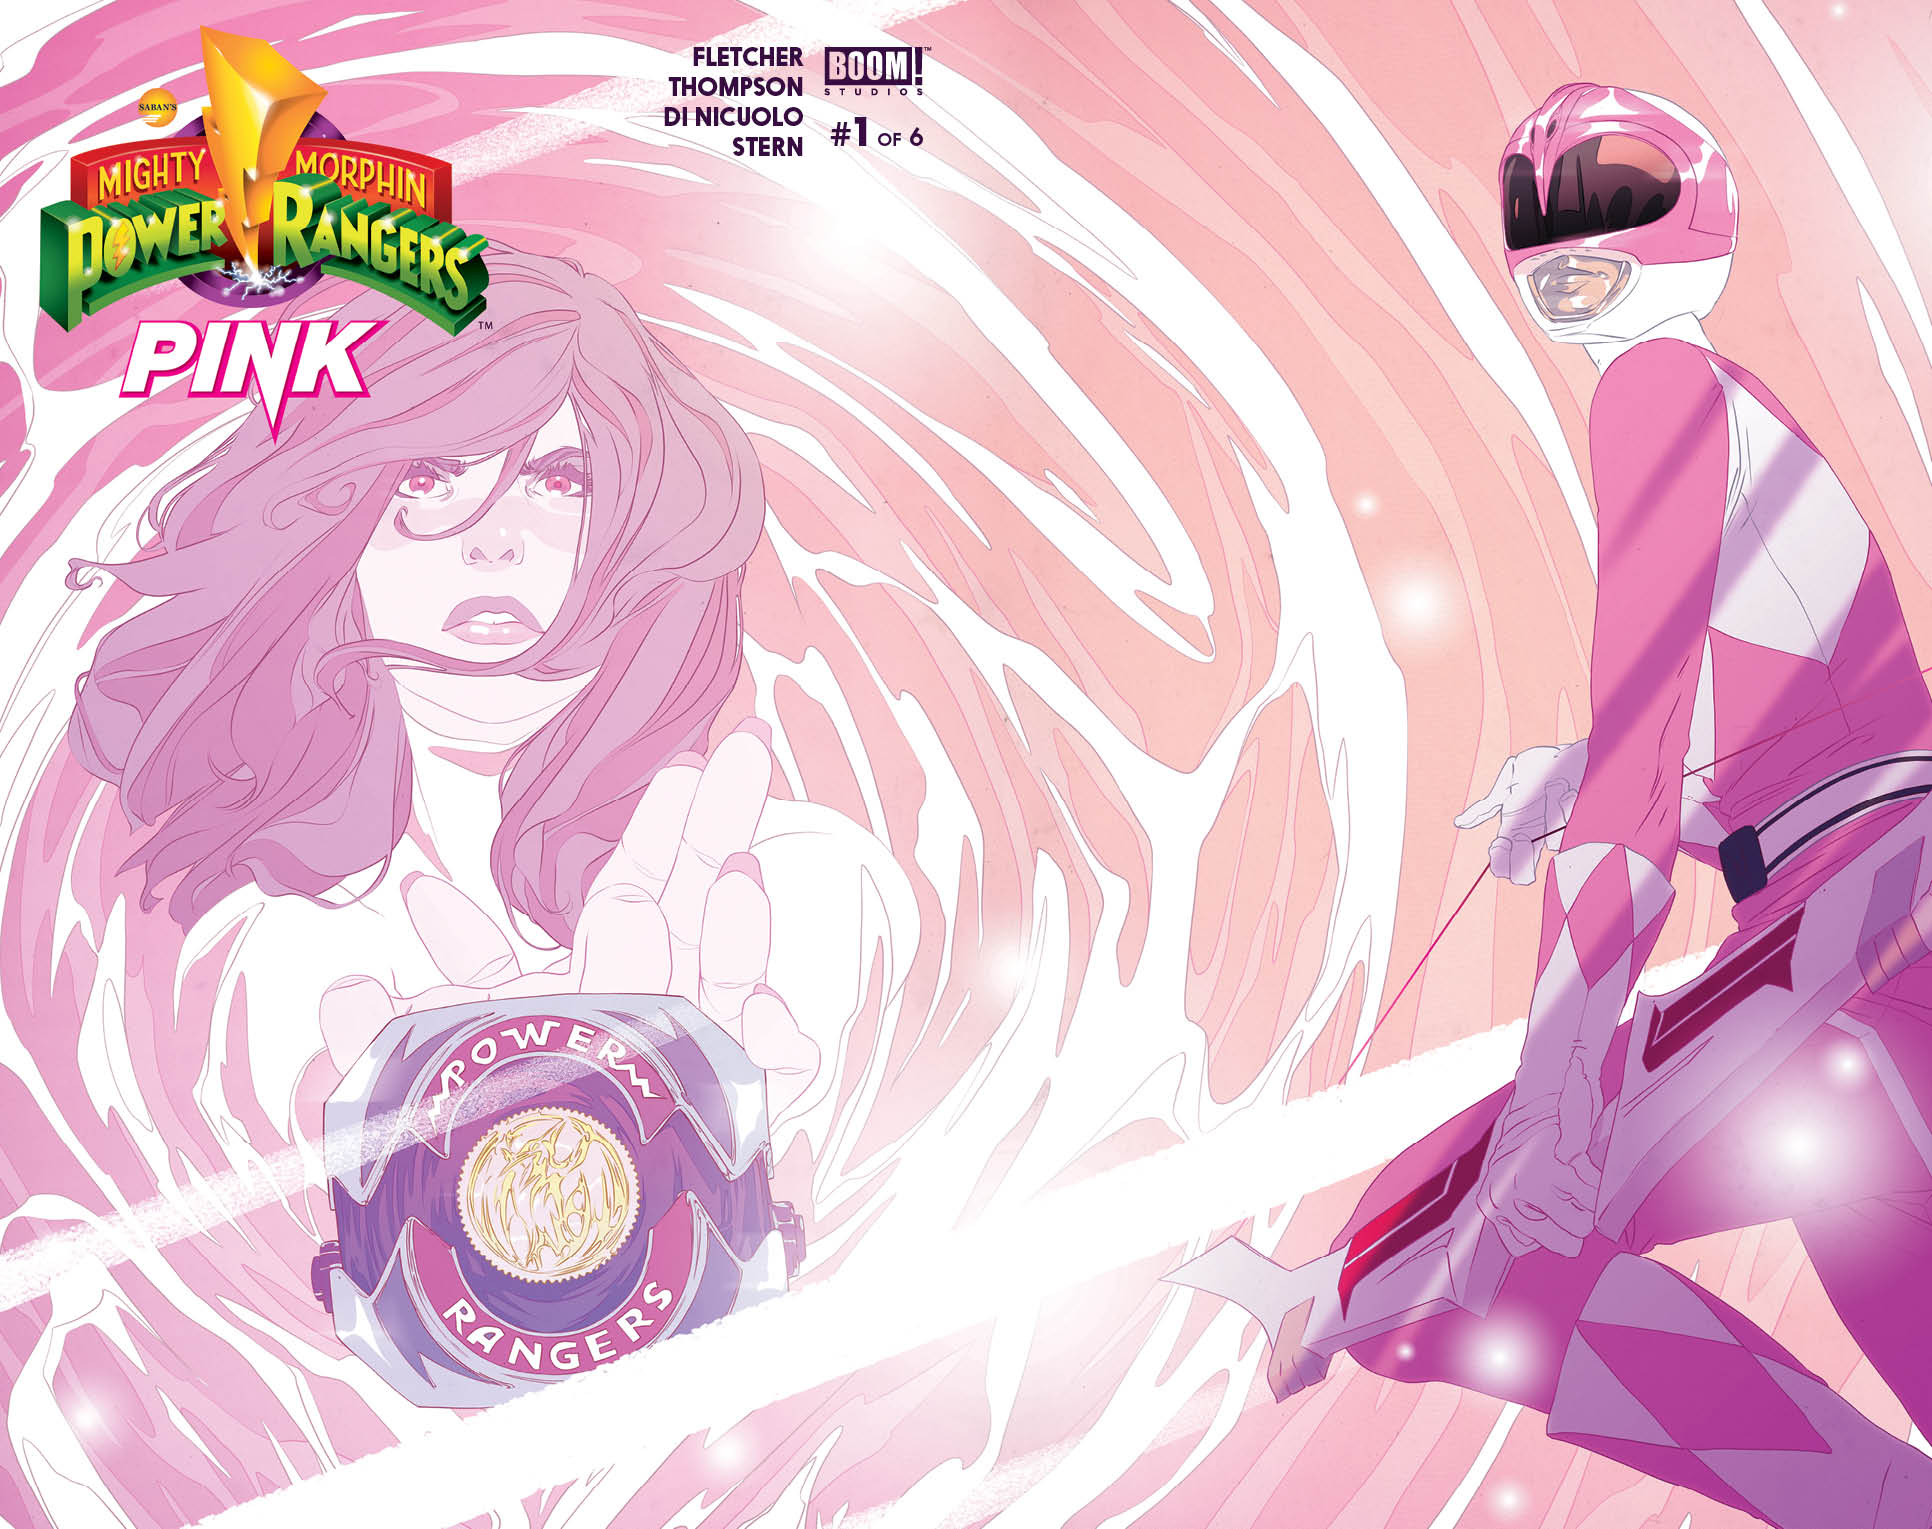 Mighty Morphin Power Rangers: Pink 0001b